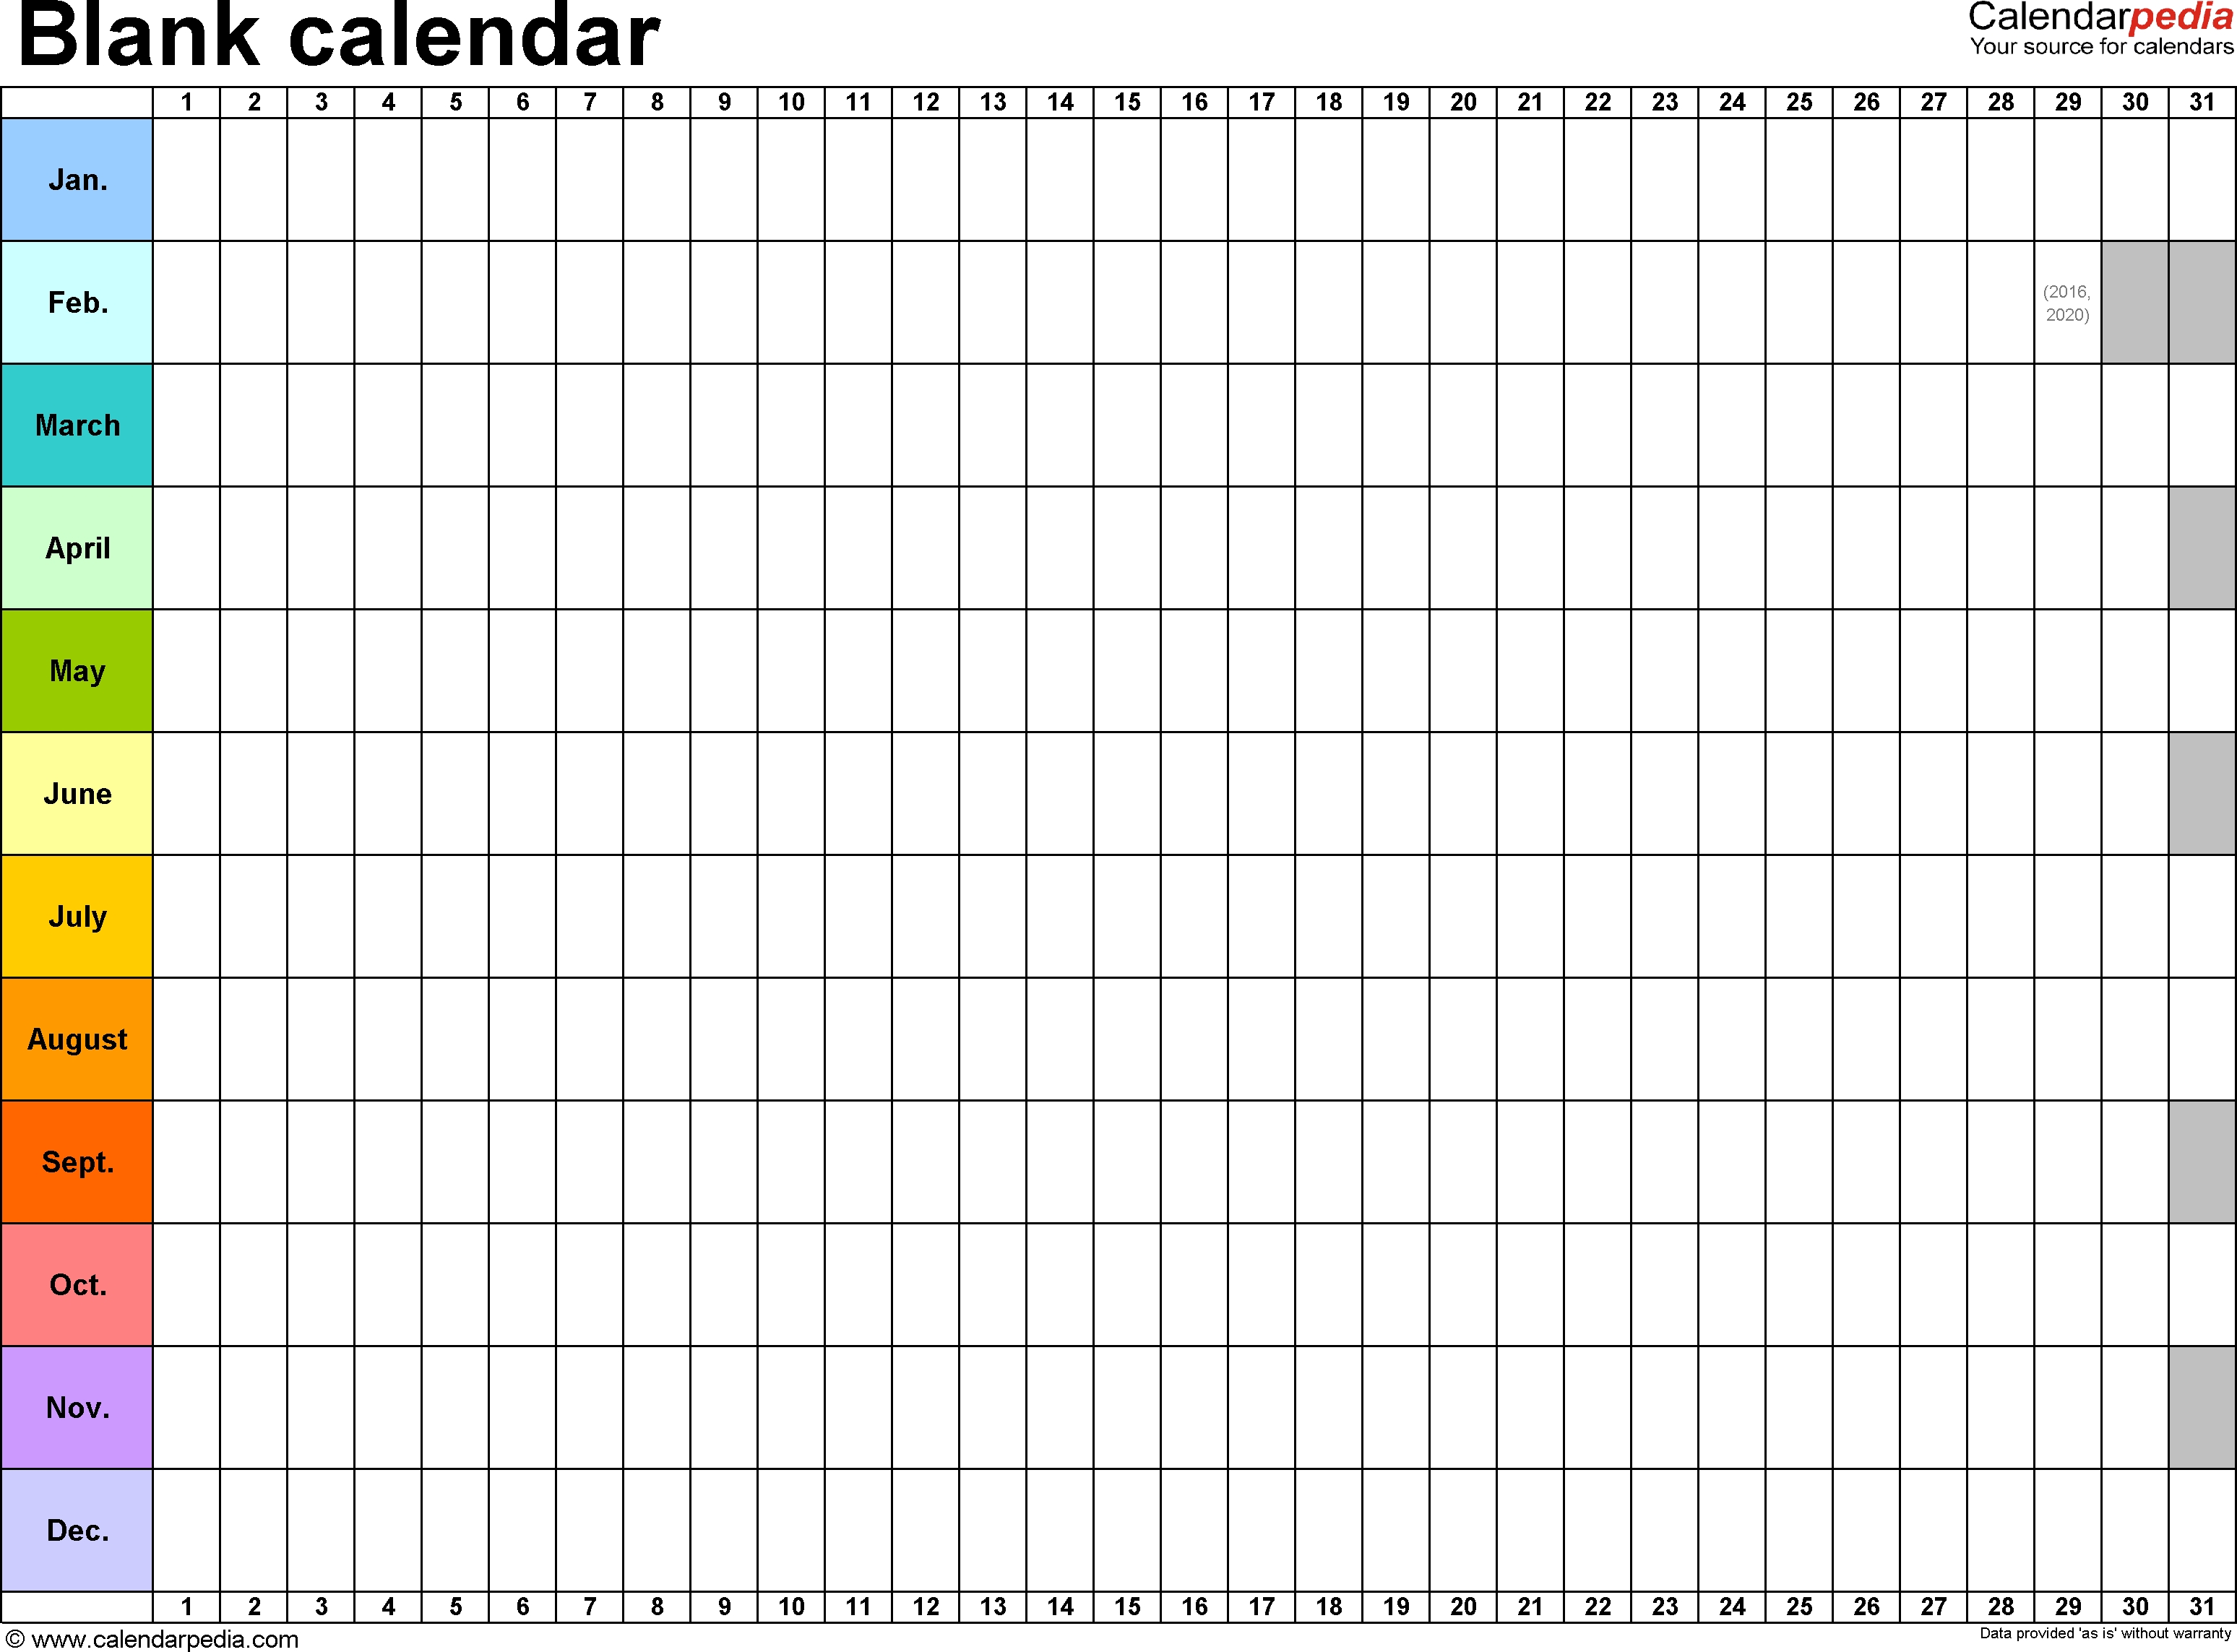 Blank Calendar - 9 Free Printable Microsoft Word Templates pertaining to One Page Annual Calendar Printable